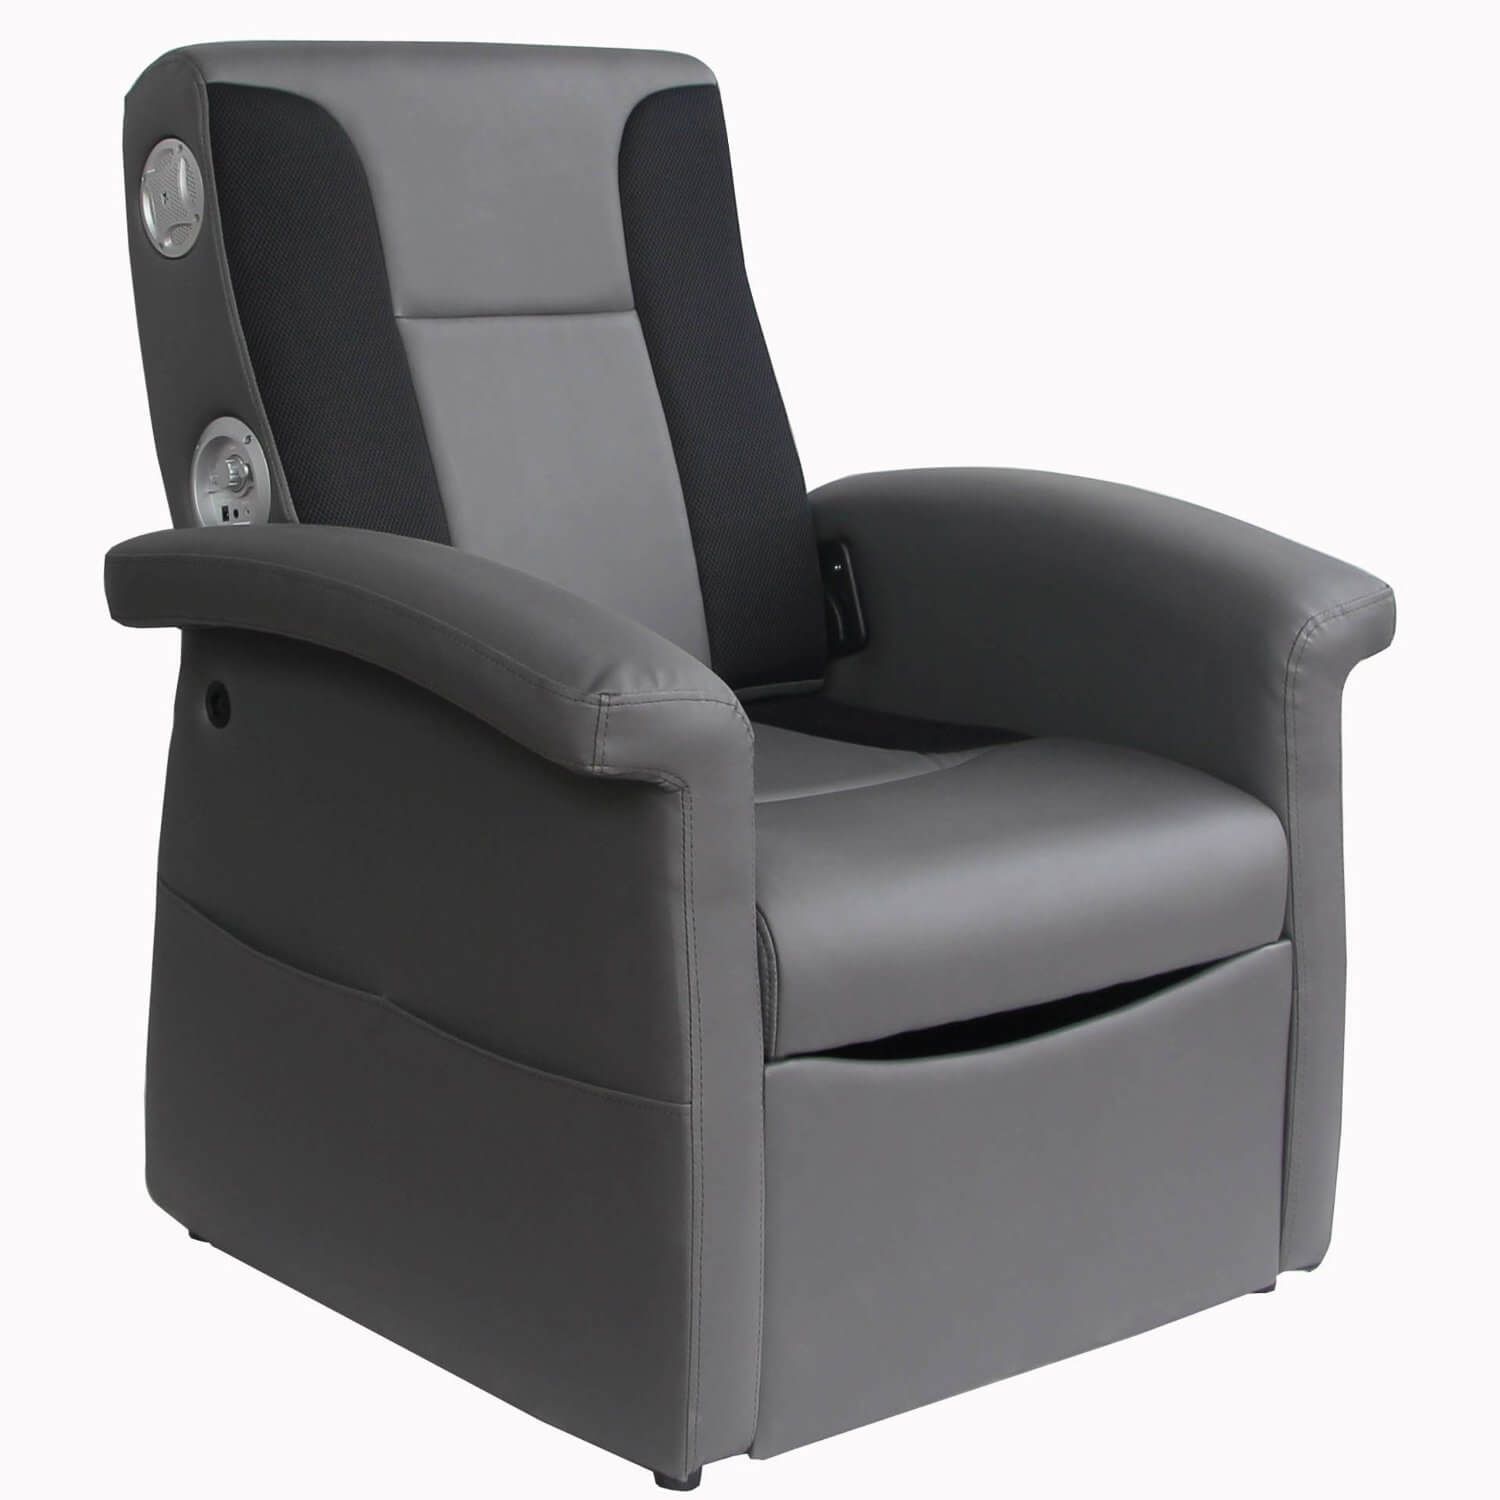 Comfortable Chair Best Gaming Chairs For Adults The Top Chair Reviews 2018